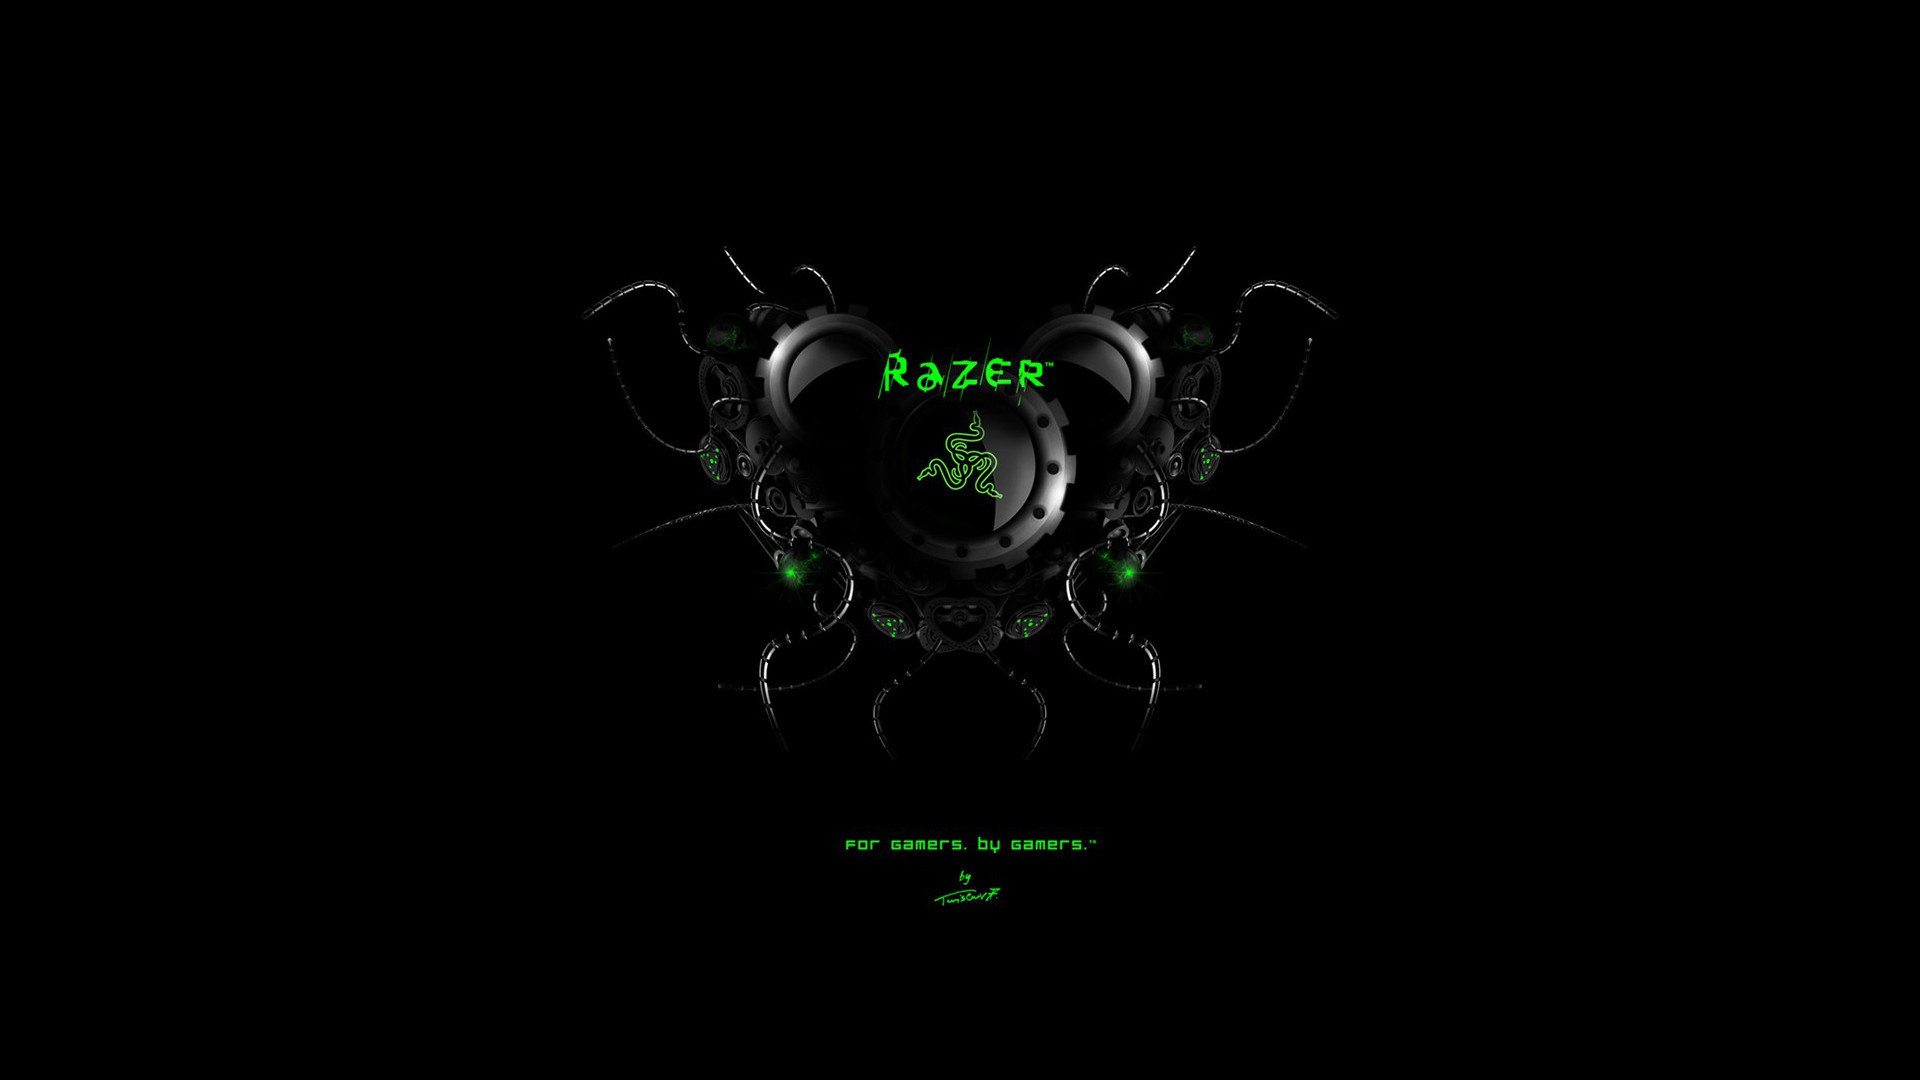 1920x1080 Pictures Razer Wallpapers Hd